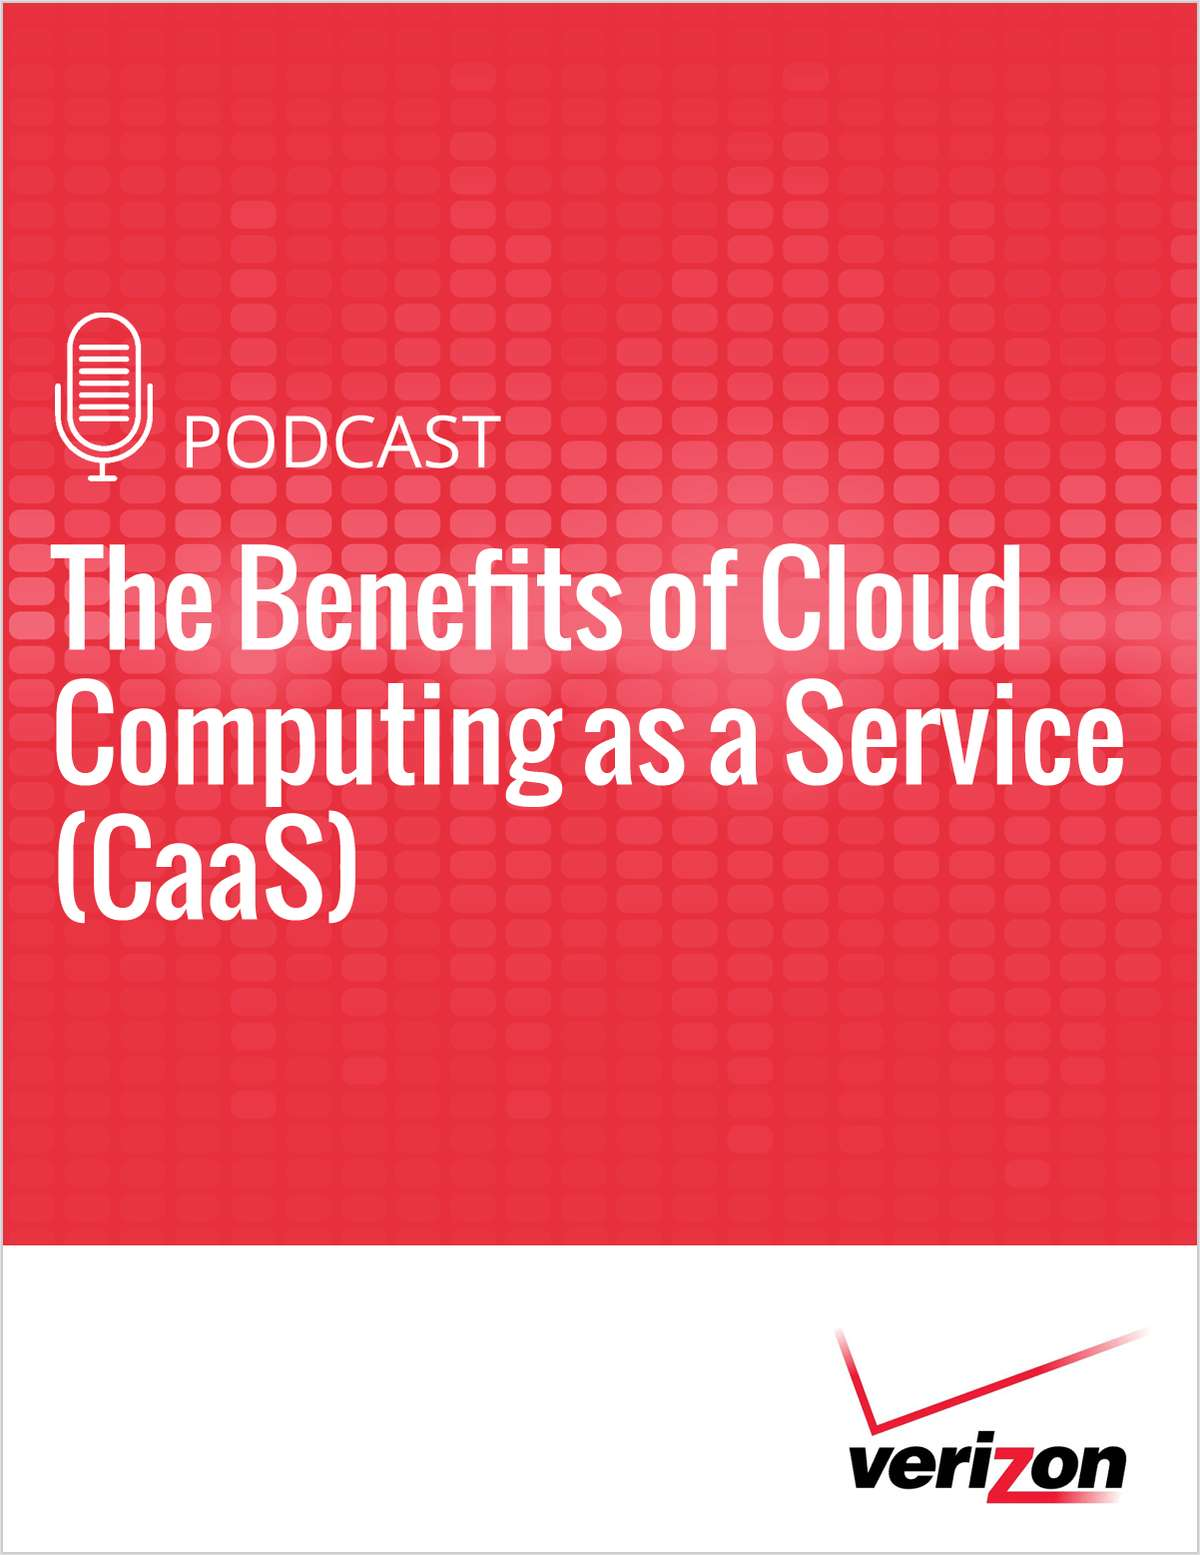 The Benefits of Cloud Computing as a Service (CaaS)